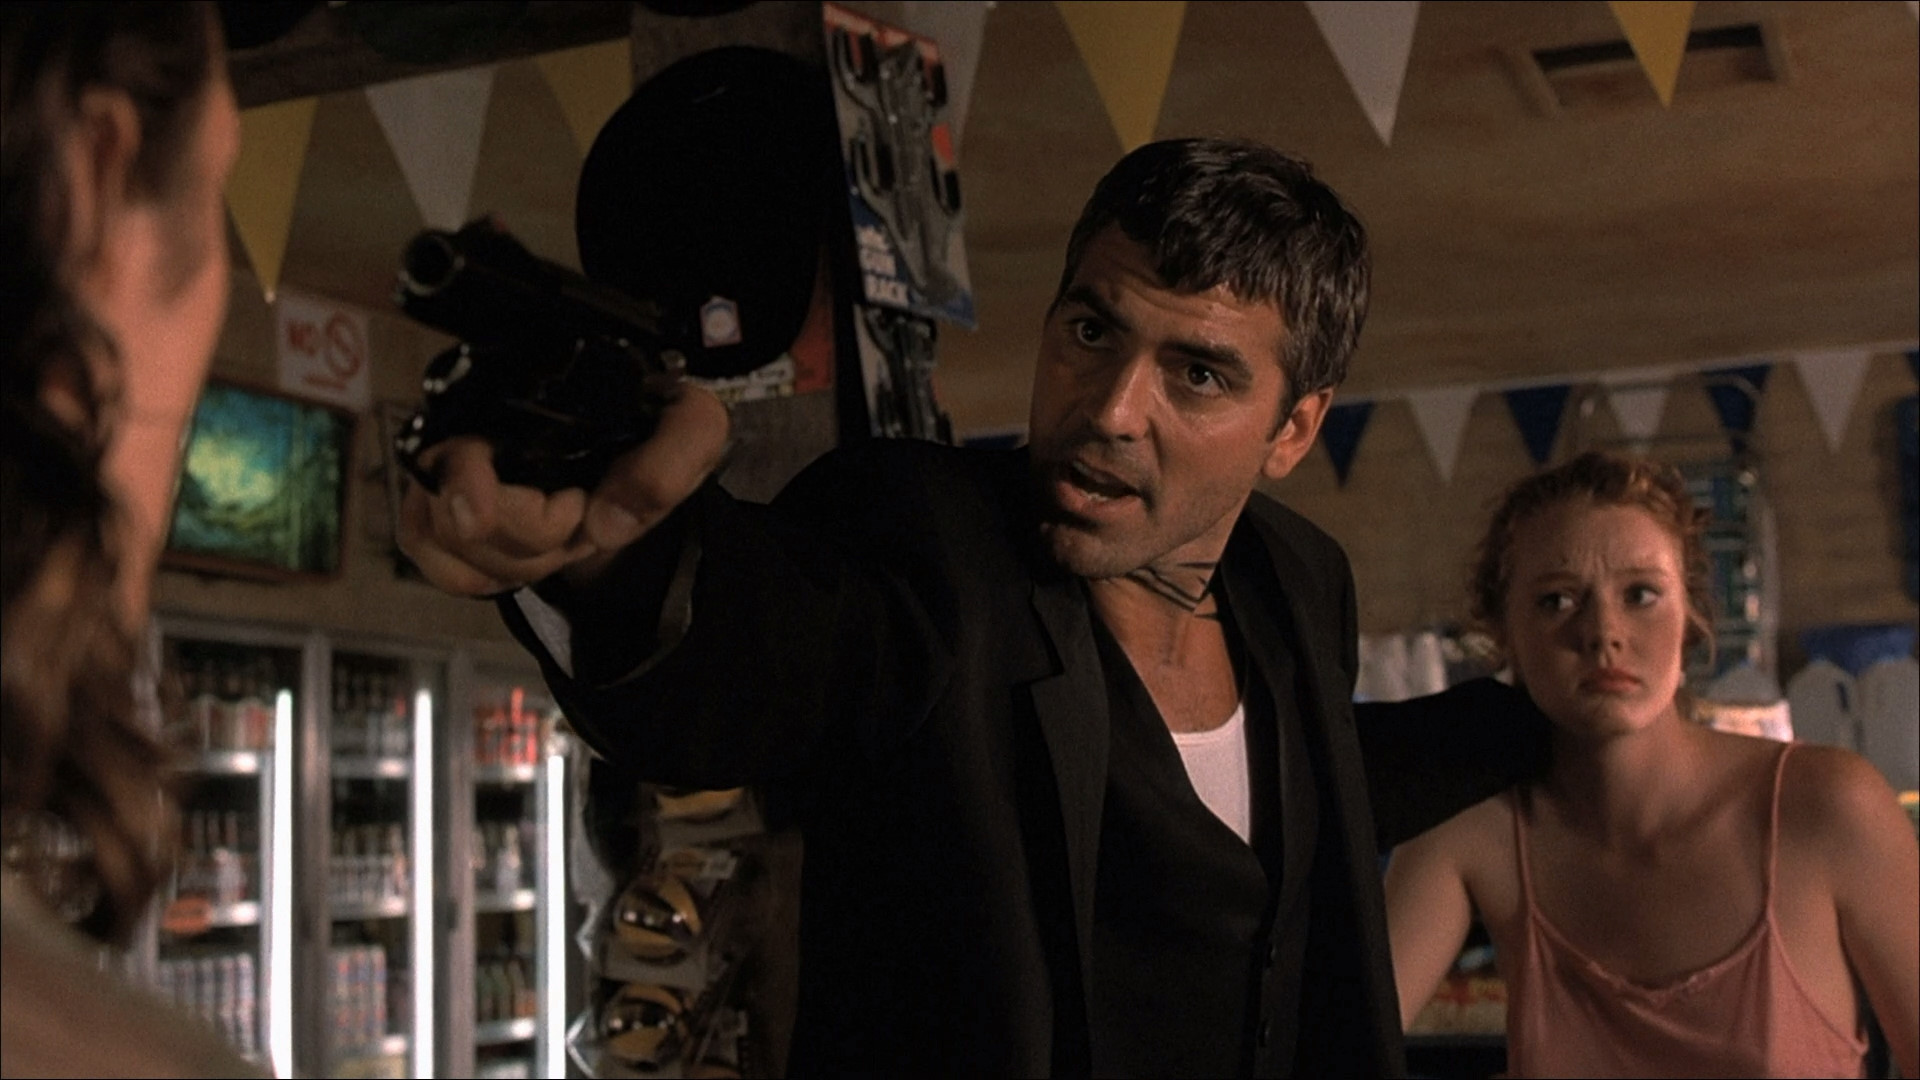 This is a still from From Dusk Till Dawn.